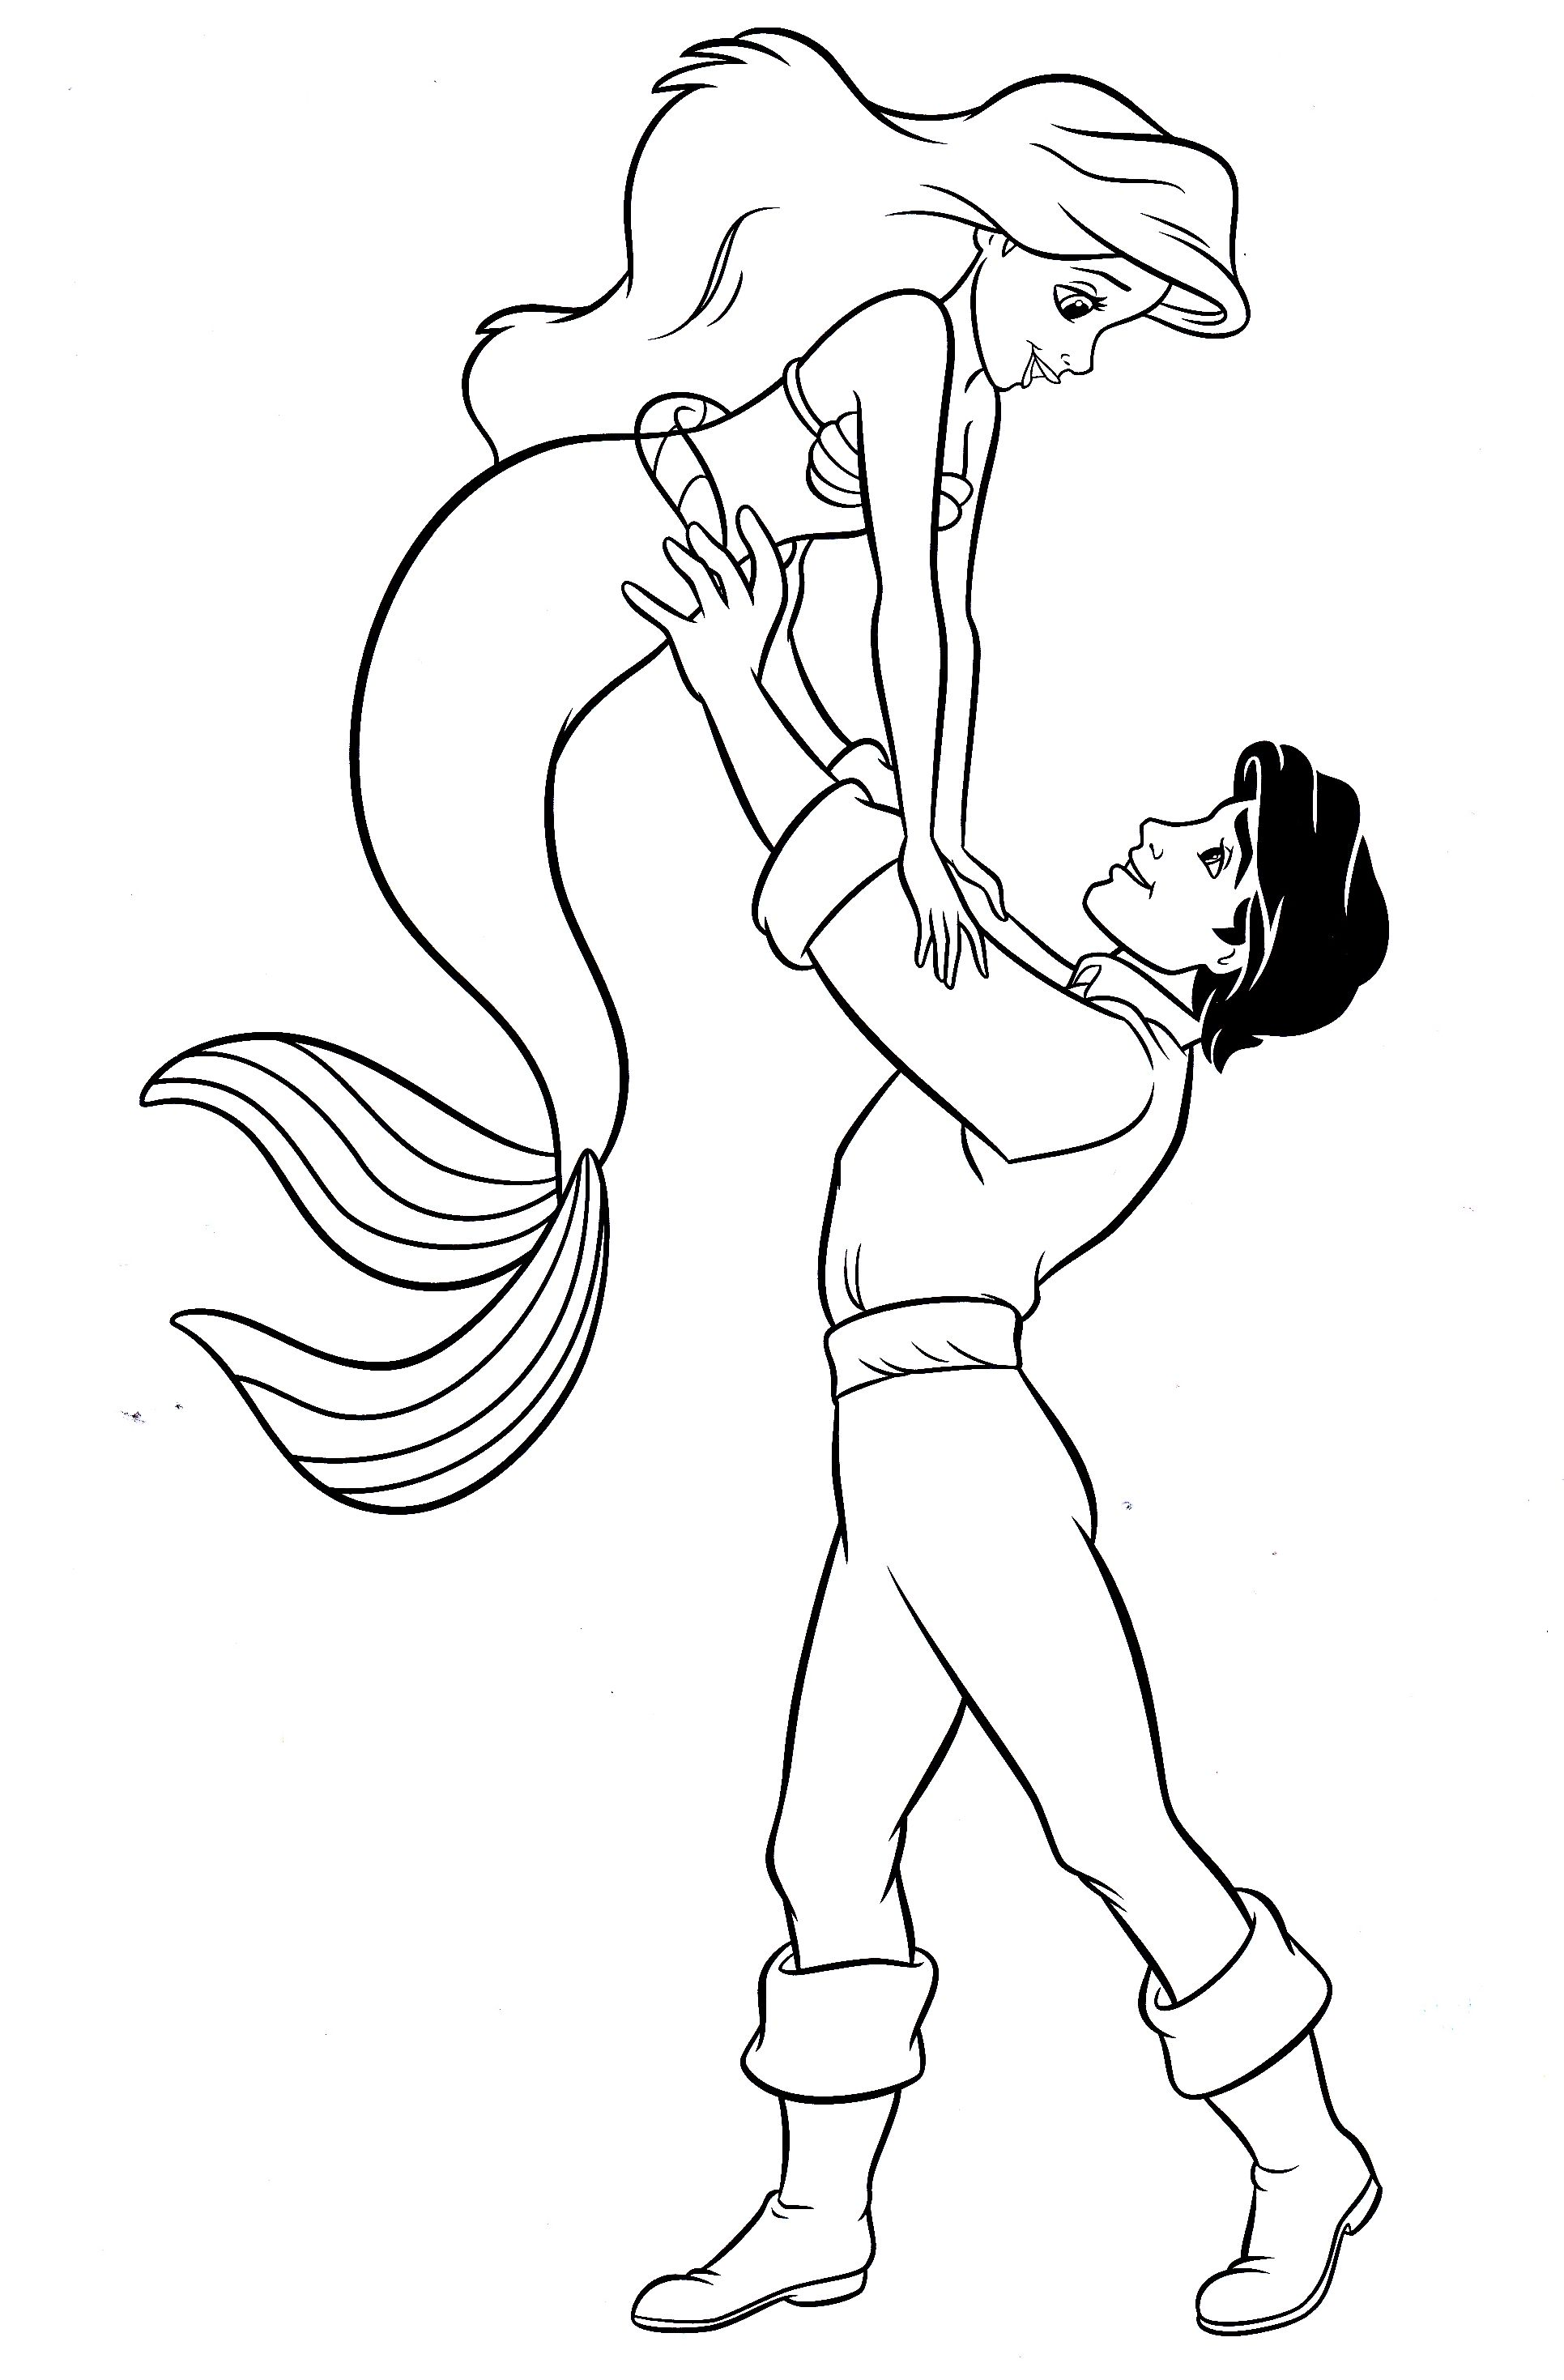 Disney Princess Weihnachten Ausmalbilder : Princess Ariel Prince Eric Coloring Pages Coloring Pages